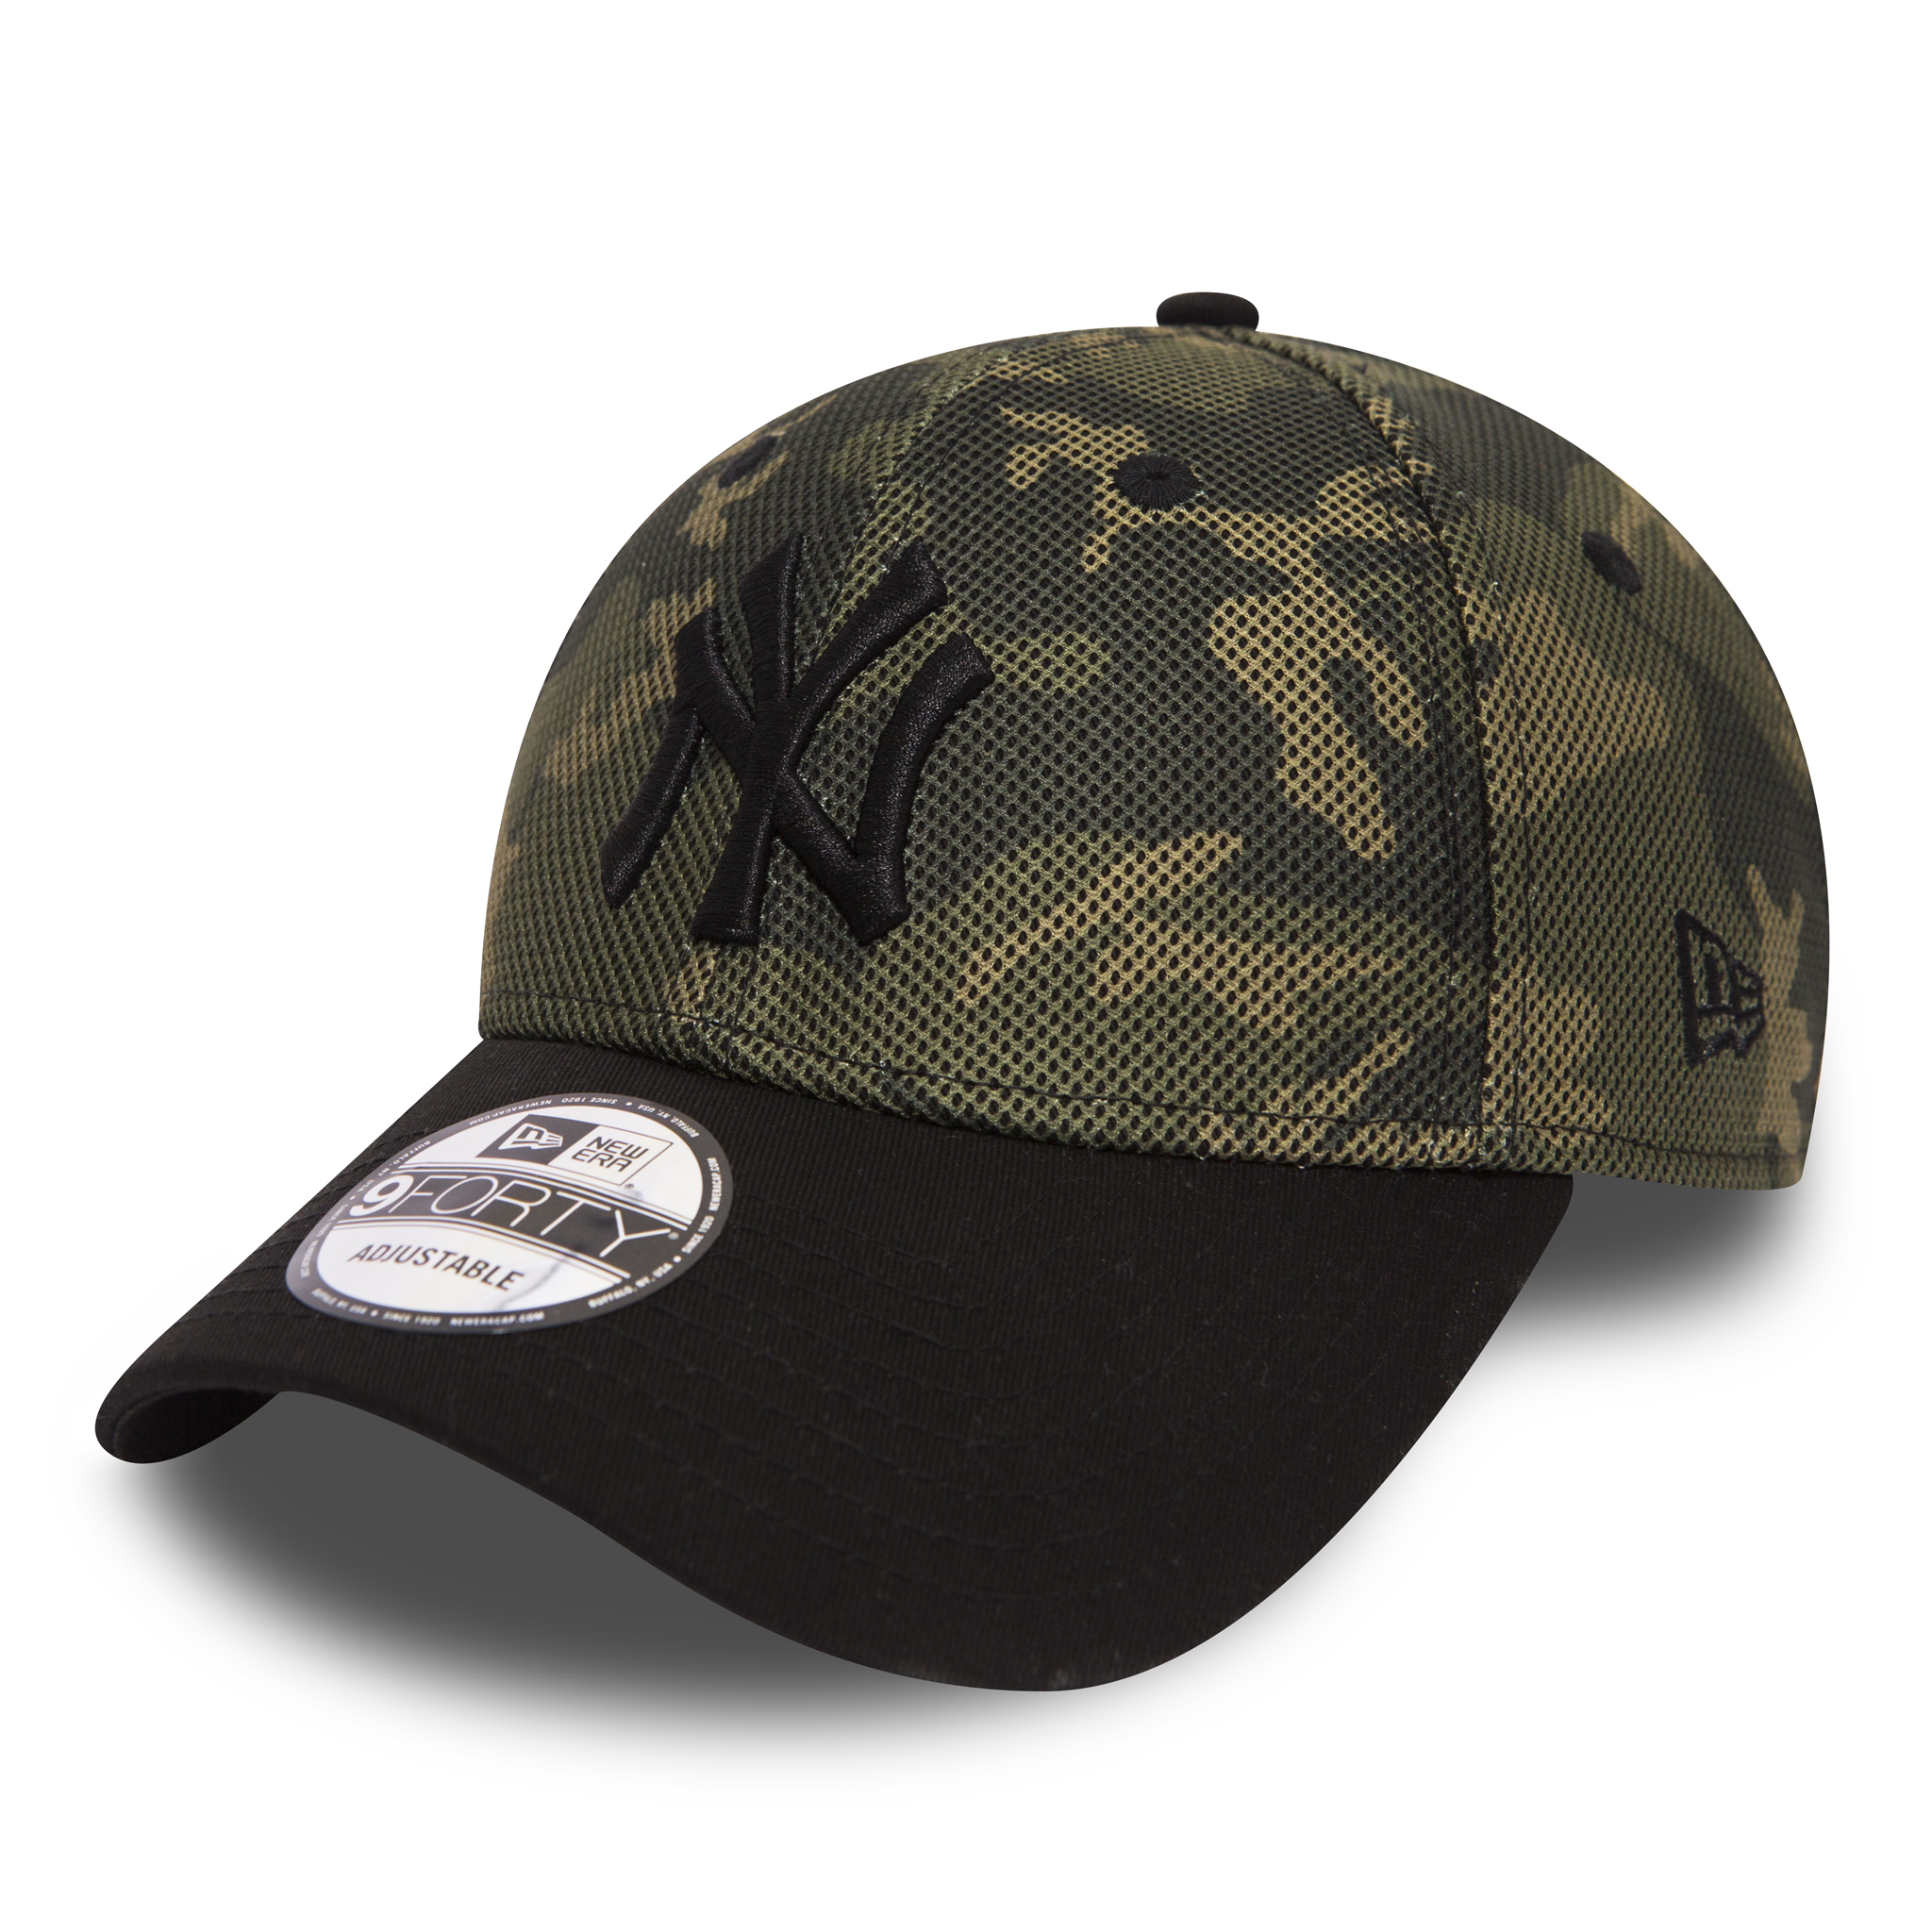 MESH OVERLAY 9FORTY. NEW YORK YANKEES. CAMO BLACK